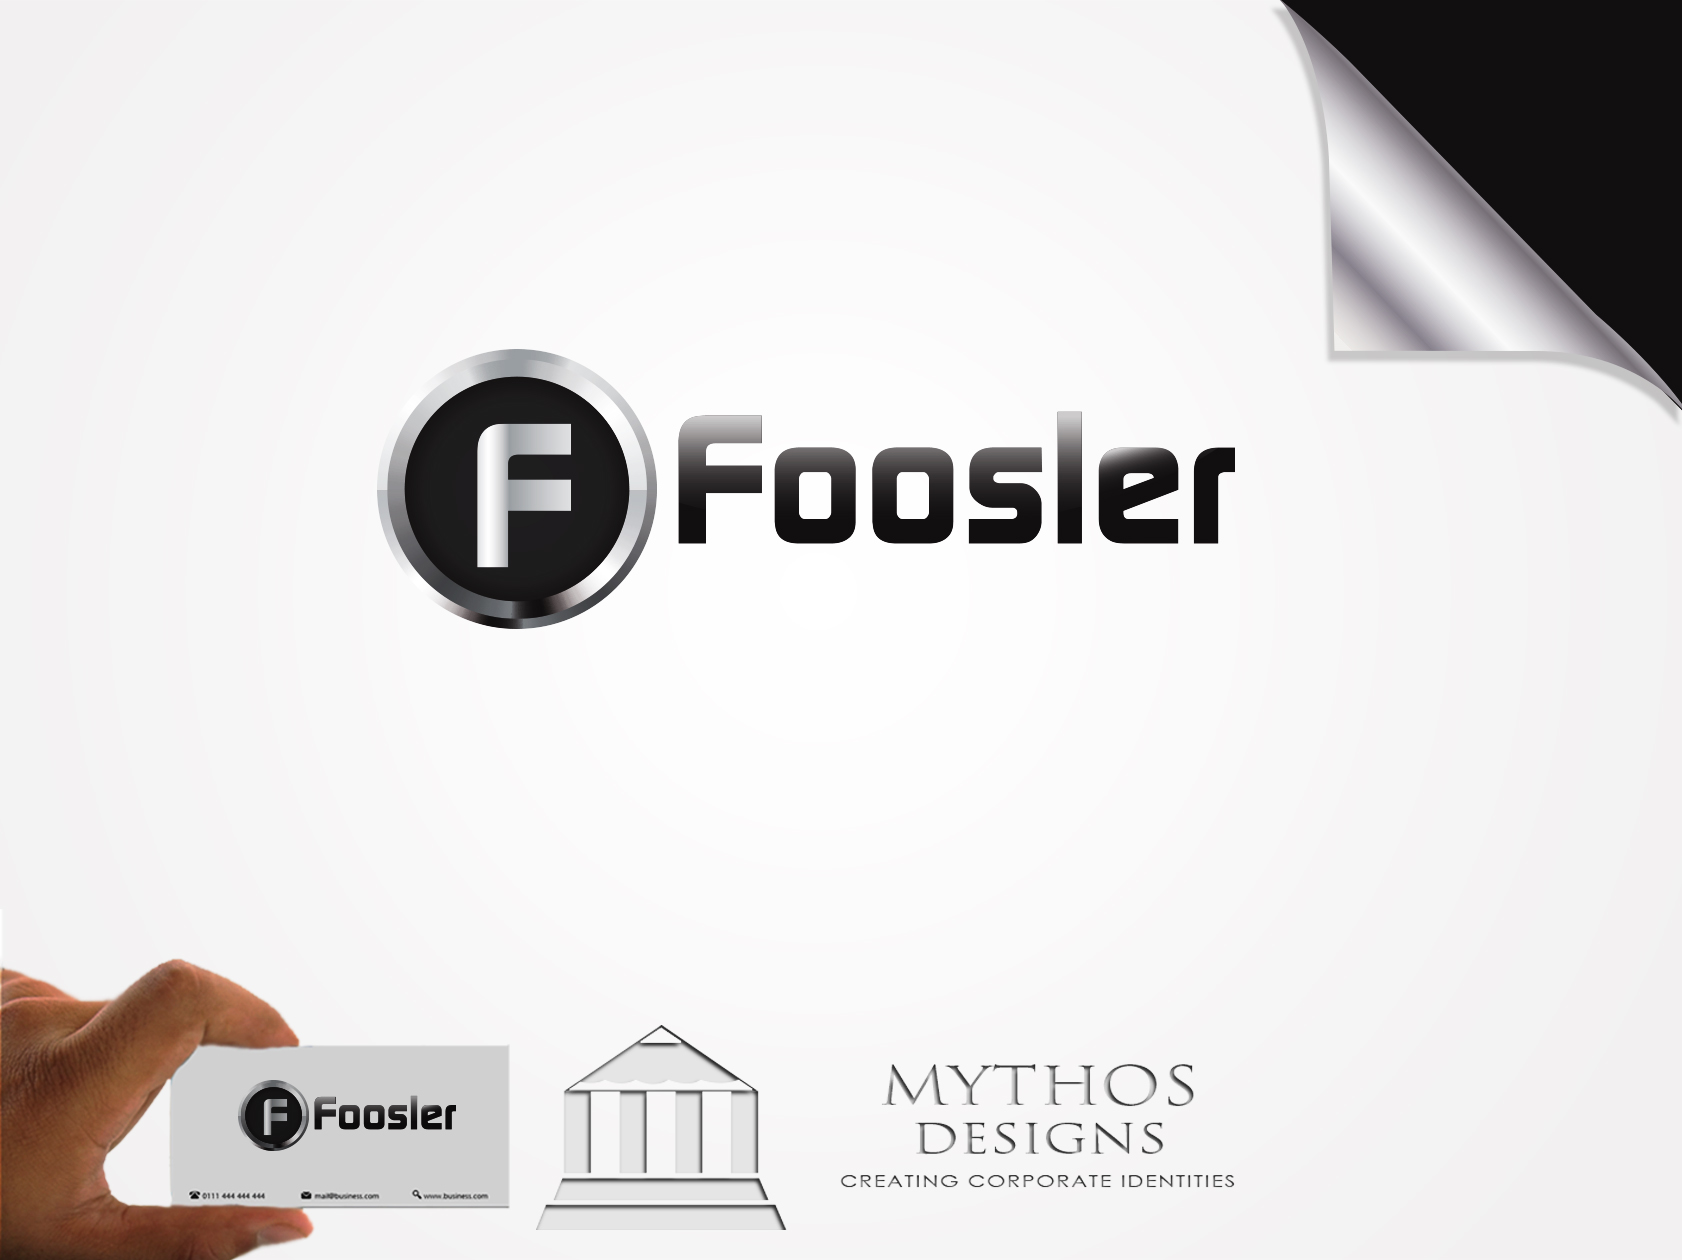 Logo Design by Mythos Designs - Entry No. 87 in the Logo Design Contest Foosler Logo Design.